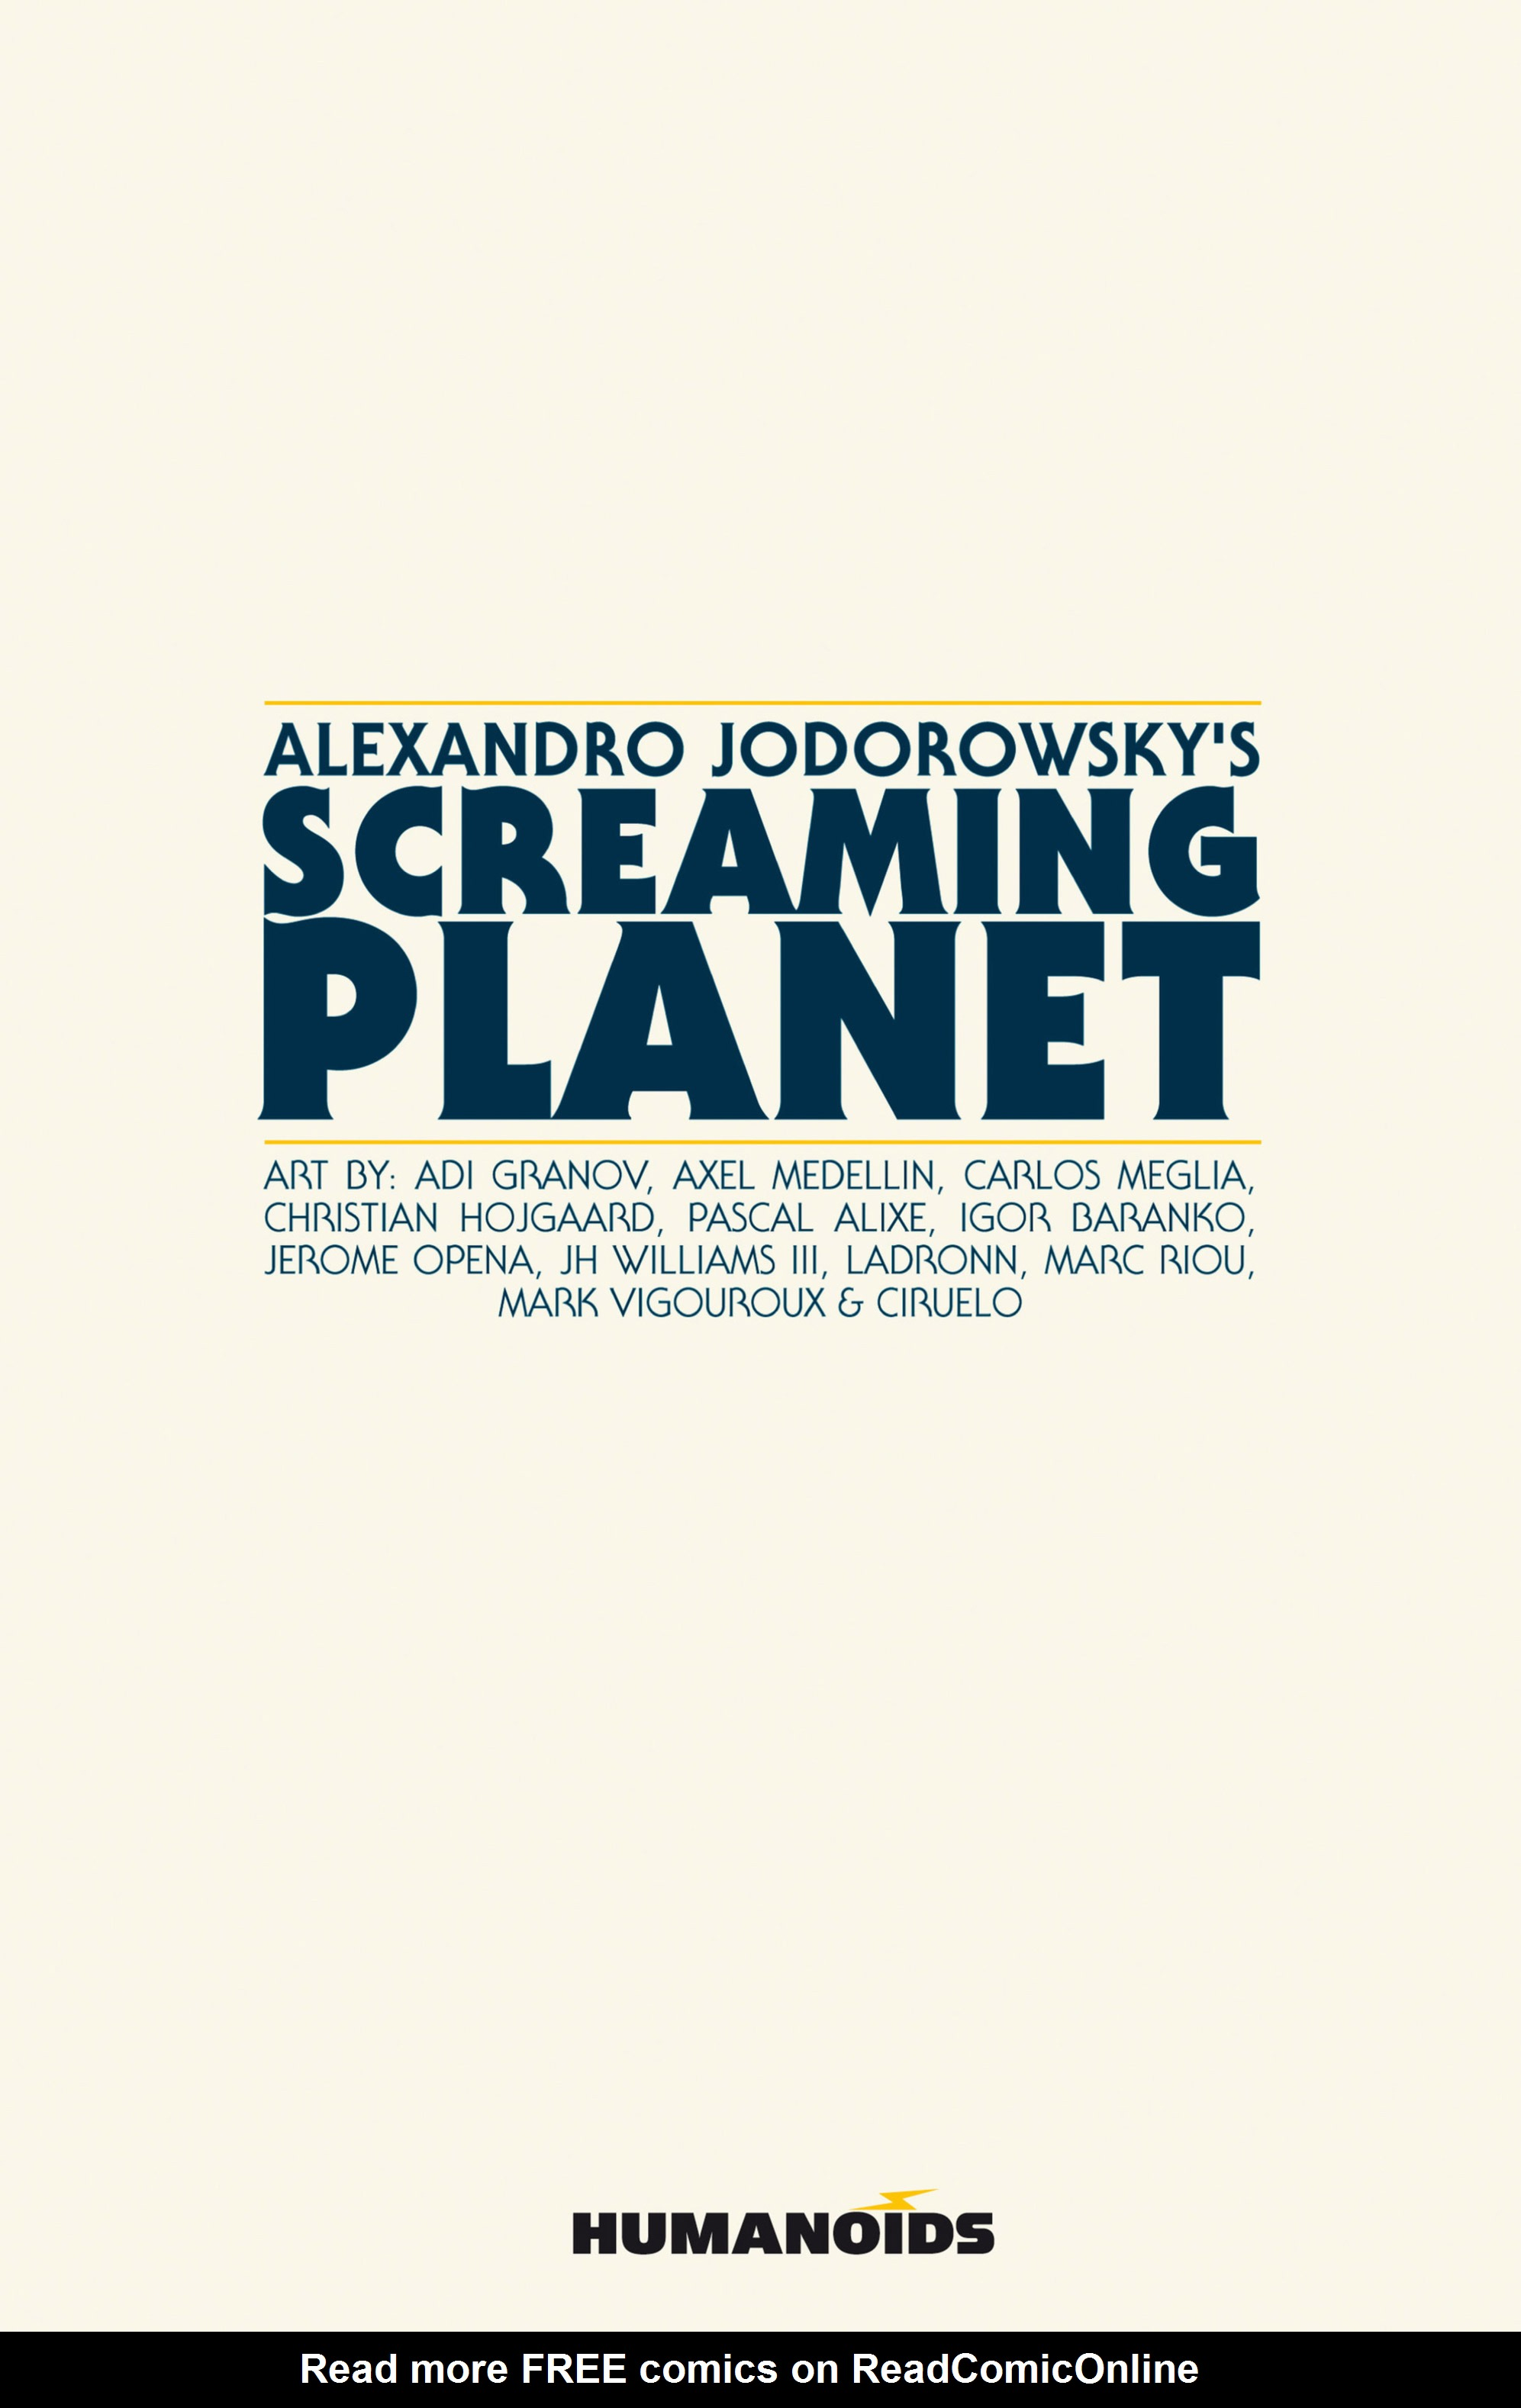 Read online Alejandro Jodorowsky's Screaming Planet comic -  Issue #1 - 2